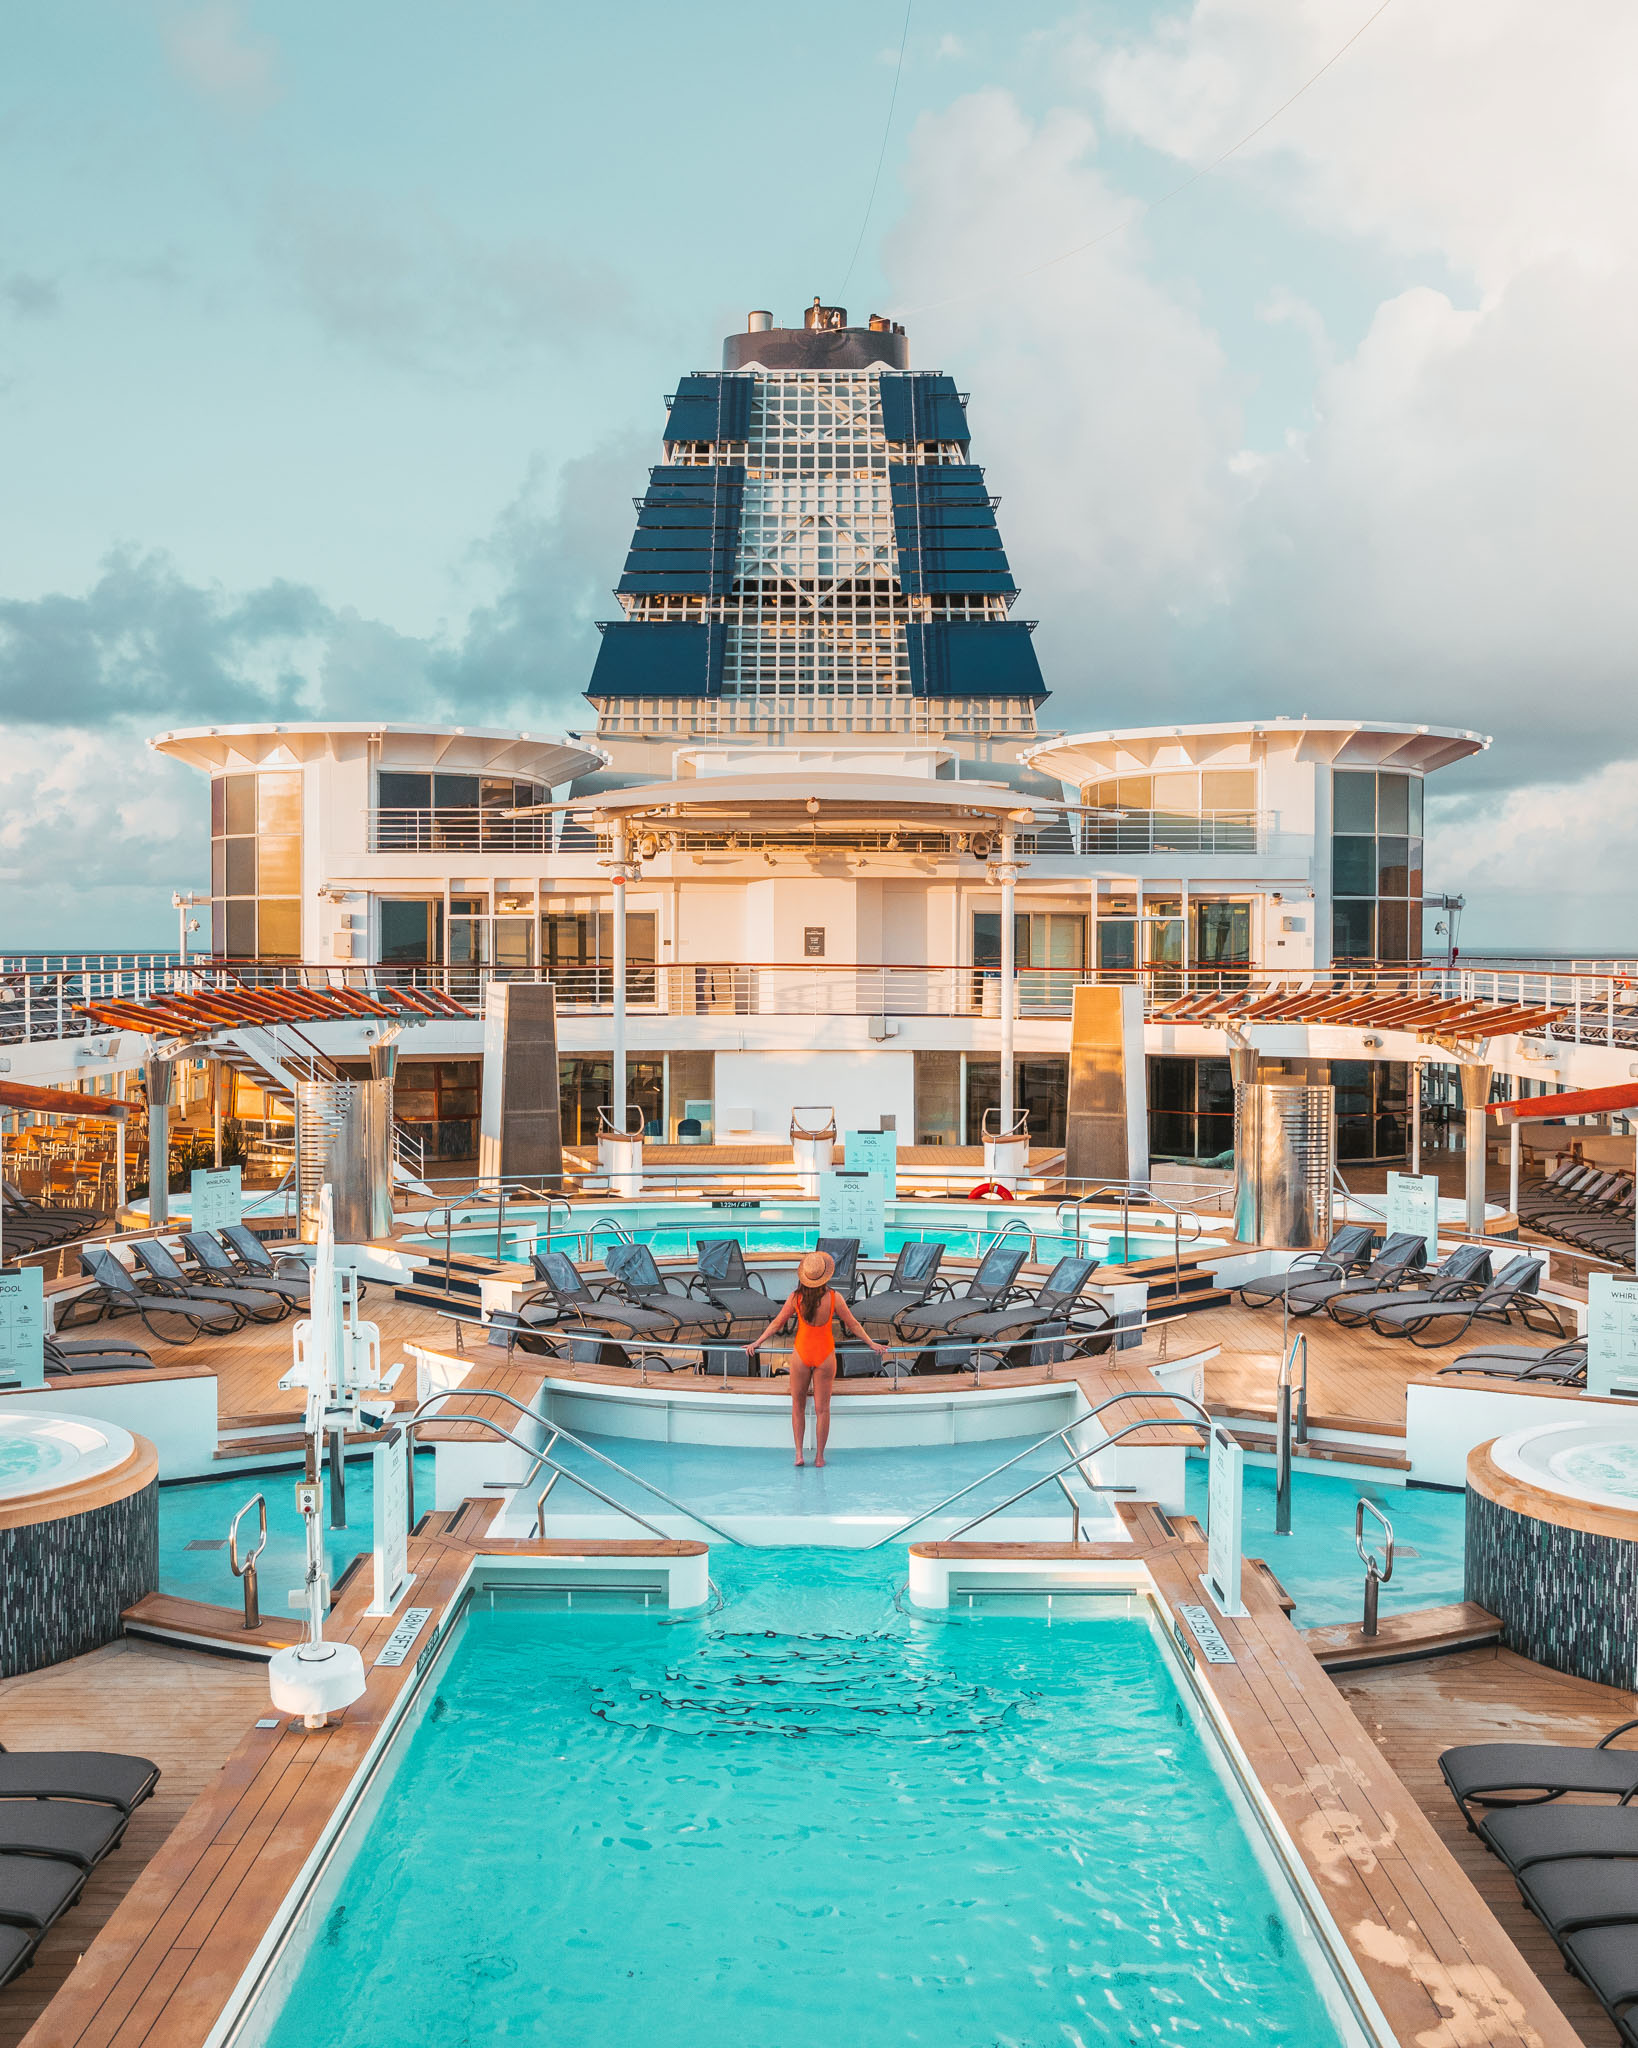 Main pool // Cruise Review: Everything You Need To Know About The Celebrity Summit